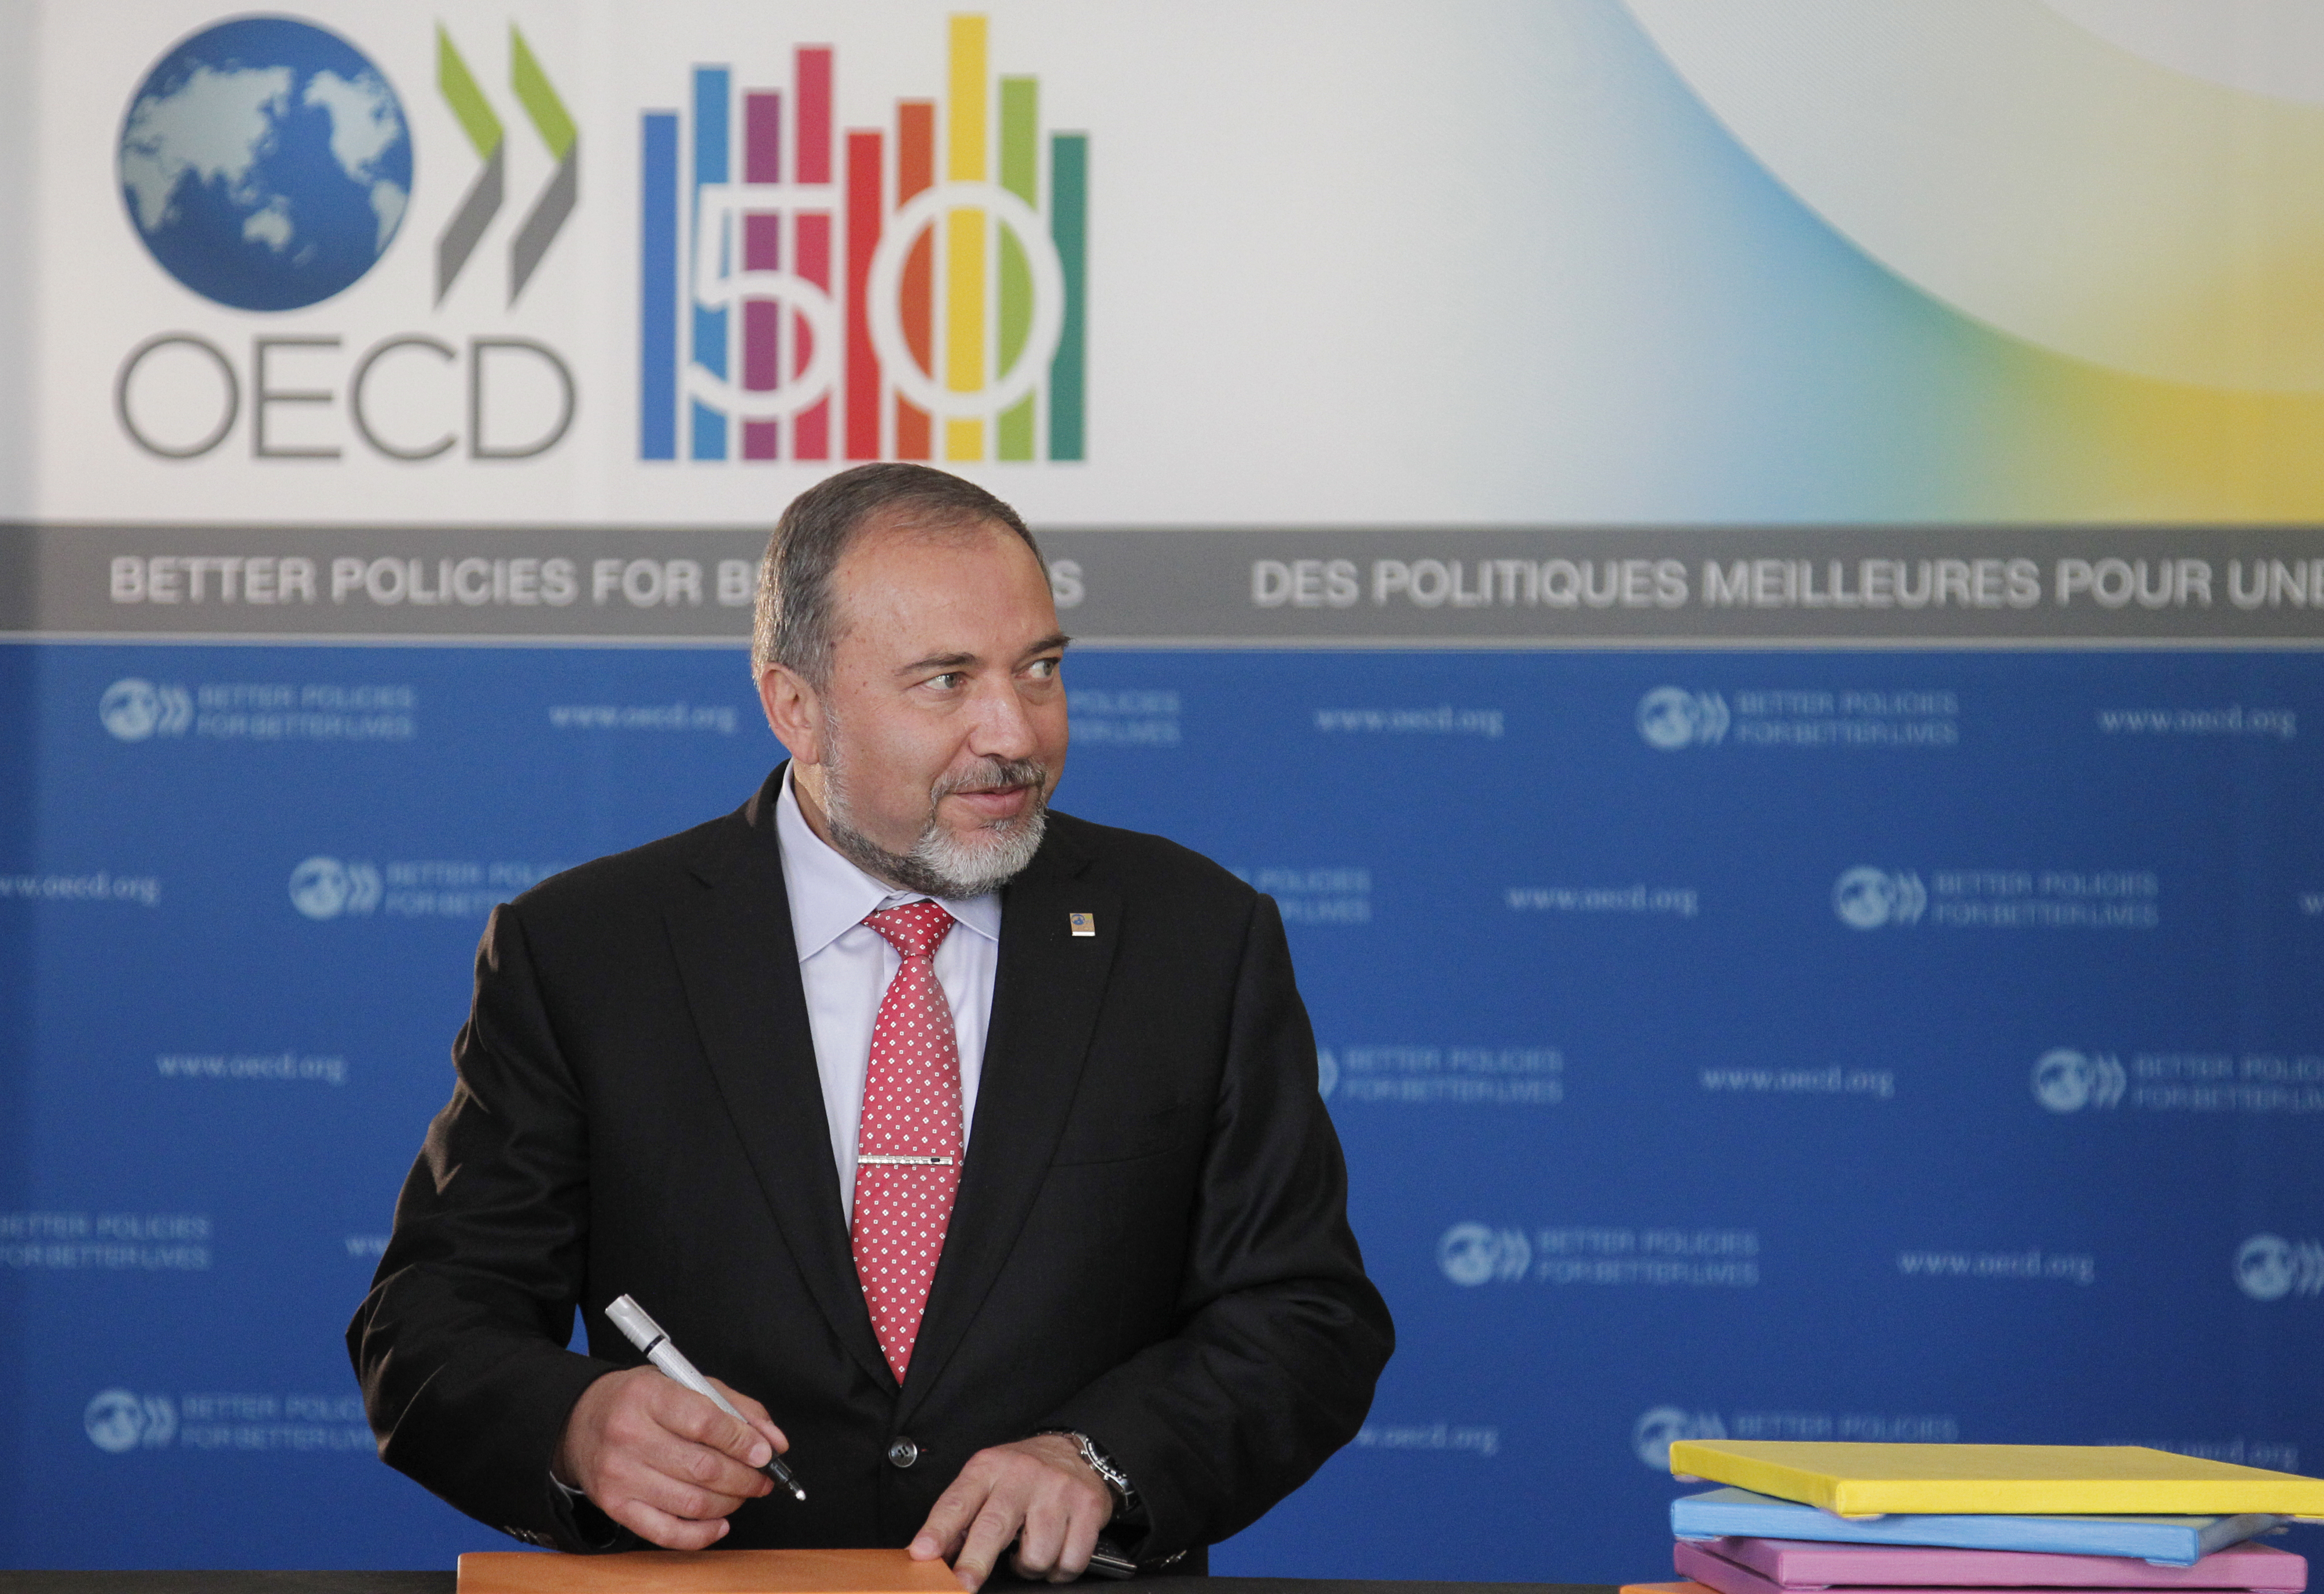 25 may 2011, OECD FORUM 2011 ARRIVAL OECD left/Right : Avigdor Liberman Deputy Prime Minister and Minister of Foreign Affairs, Israel Paris/France Victor Tonelli/OECD